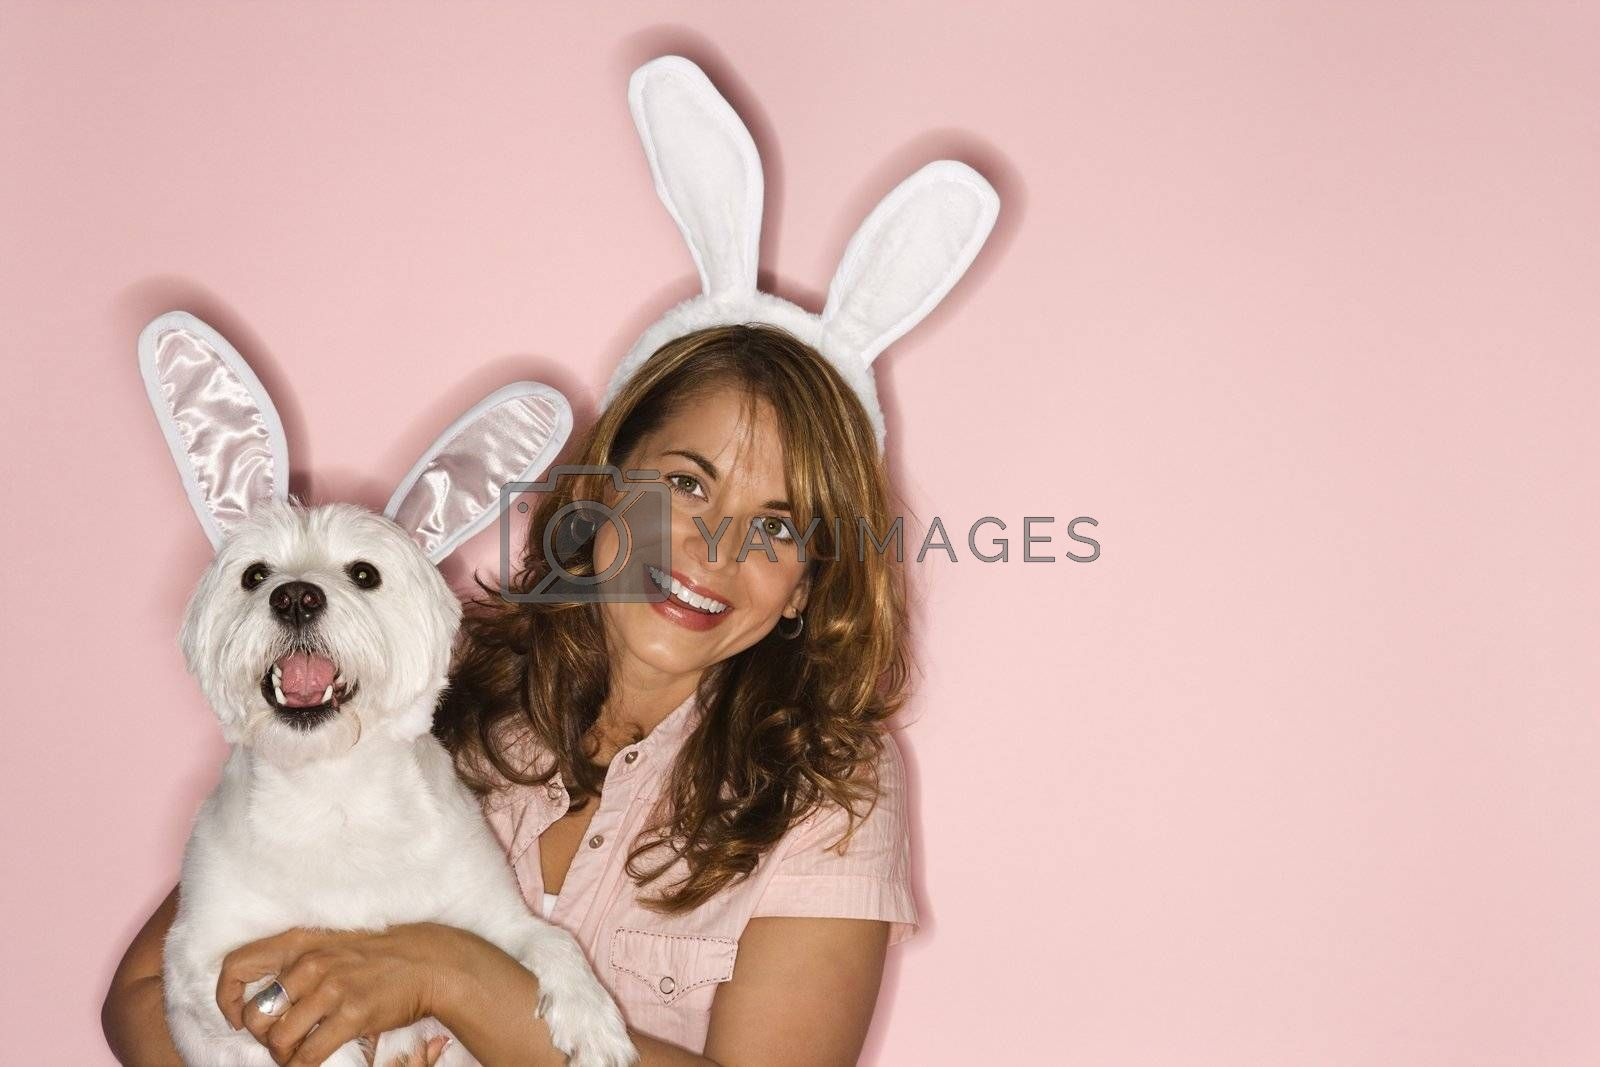 Caucasian prime adult female and white terrier dog wearing rabbit ears.